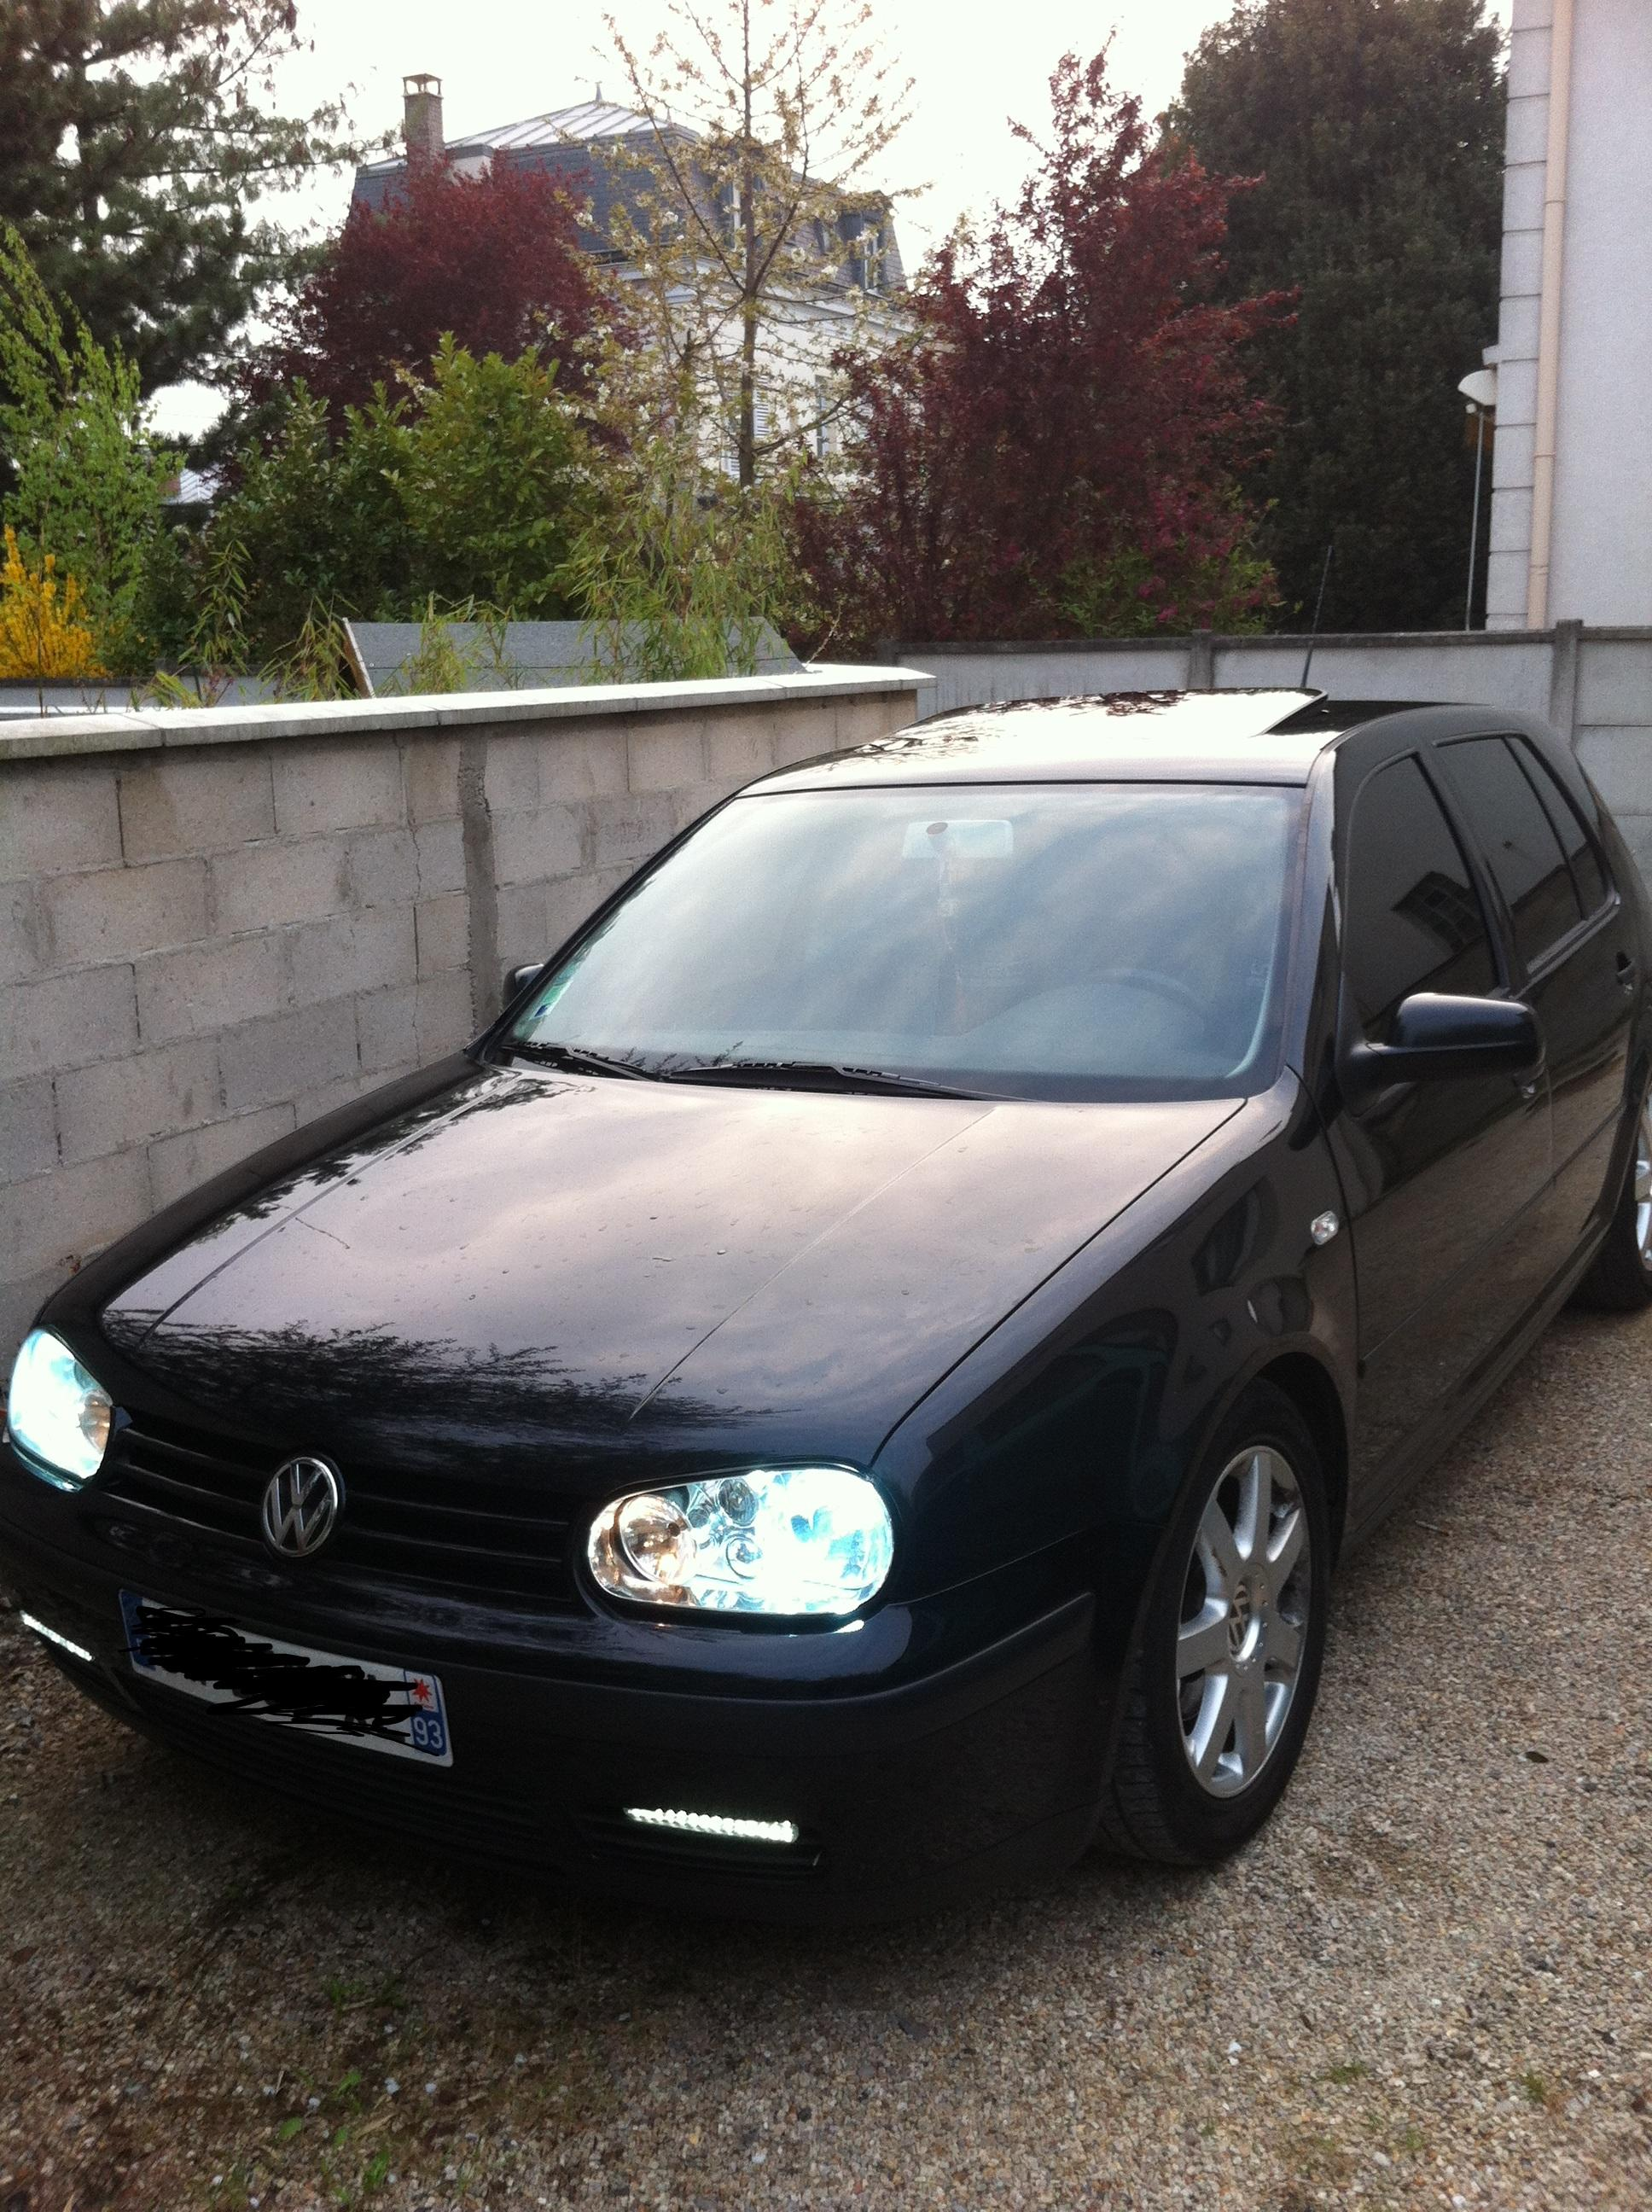 golf iv tdi 90 carat d 39 alpatch garage des golf iv tdi 90 page 3 forum volkswagen golf iv. Black Bedroom Furniture Sets. Home Design Ideas